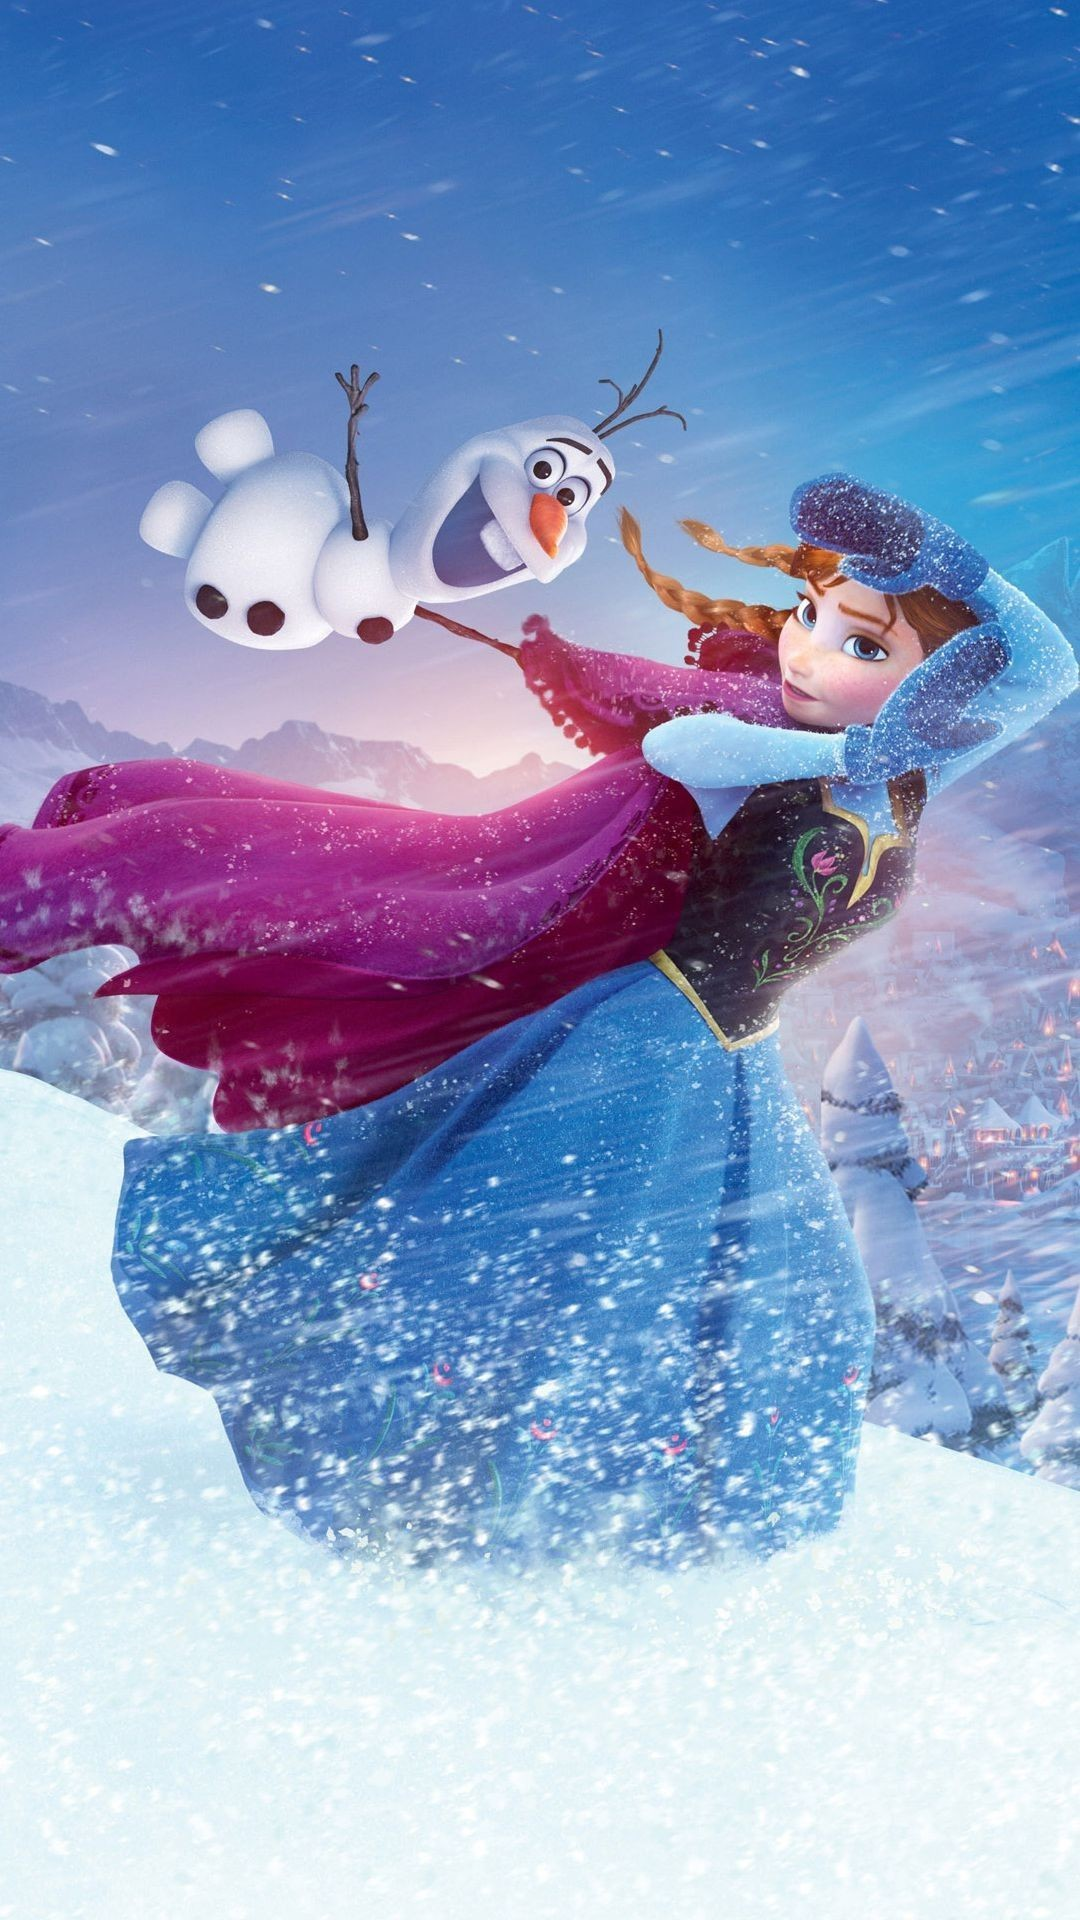 Res: 1080x1920, 2014 Halloween Frozen Anna Olaf iPhone 6 plus Wallpaper - Disney Wonderland  Cartoons